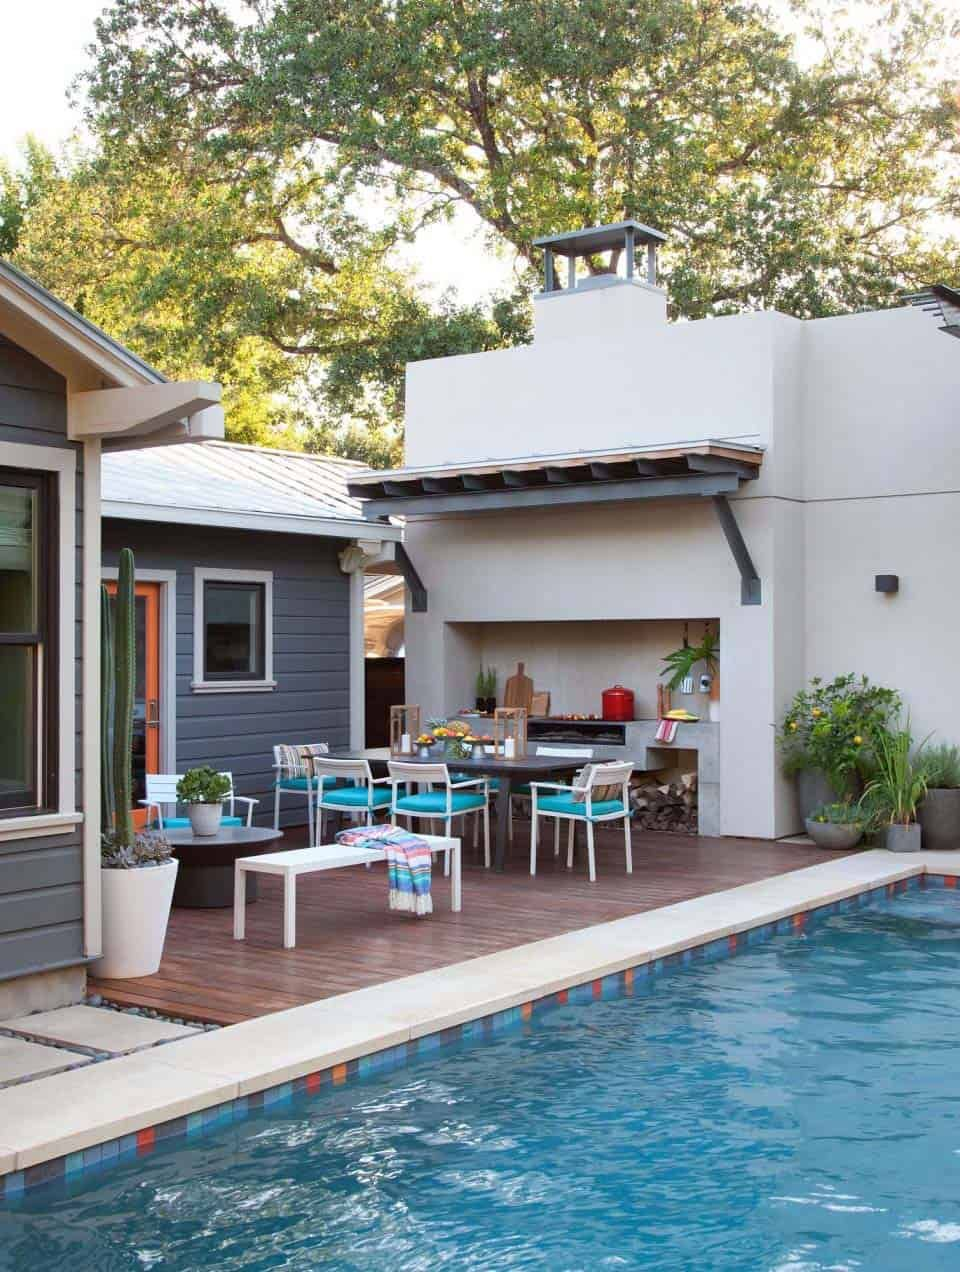 Backyard oasis in Austin with fabulous outdoor living spaces #backyardoasis